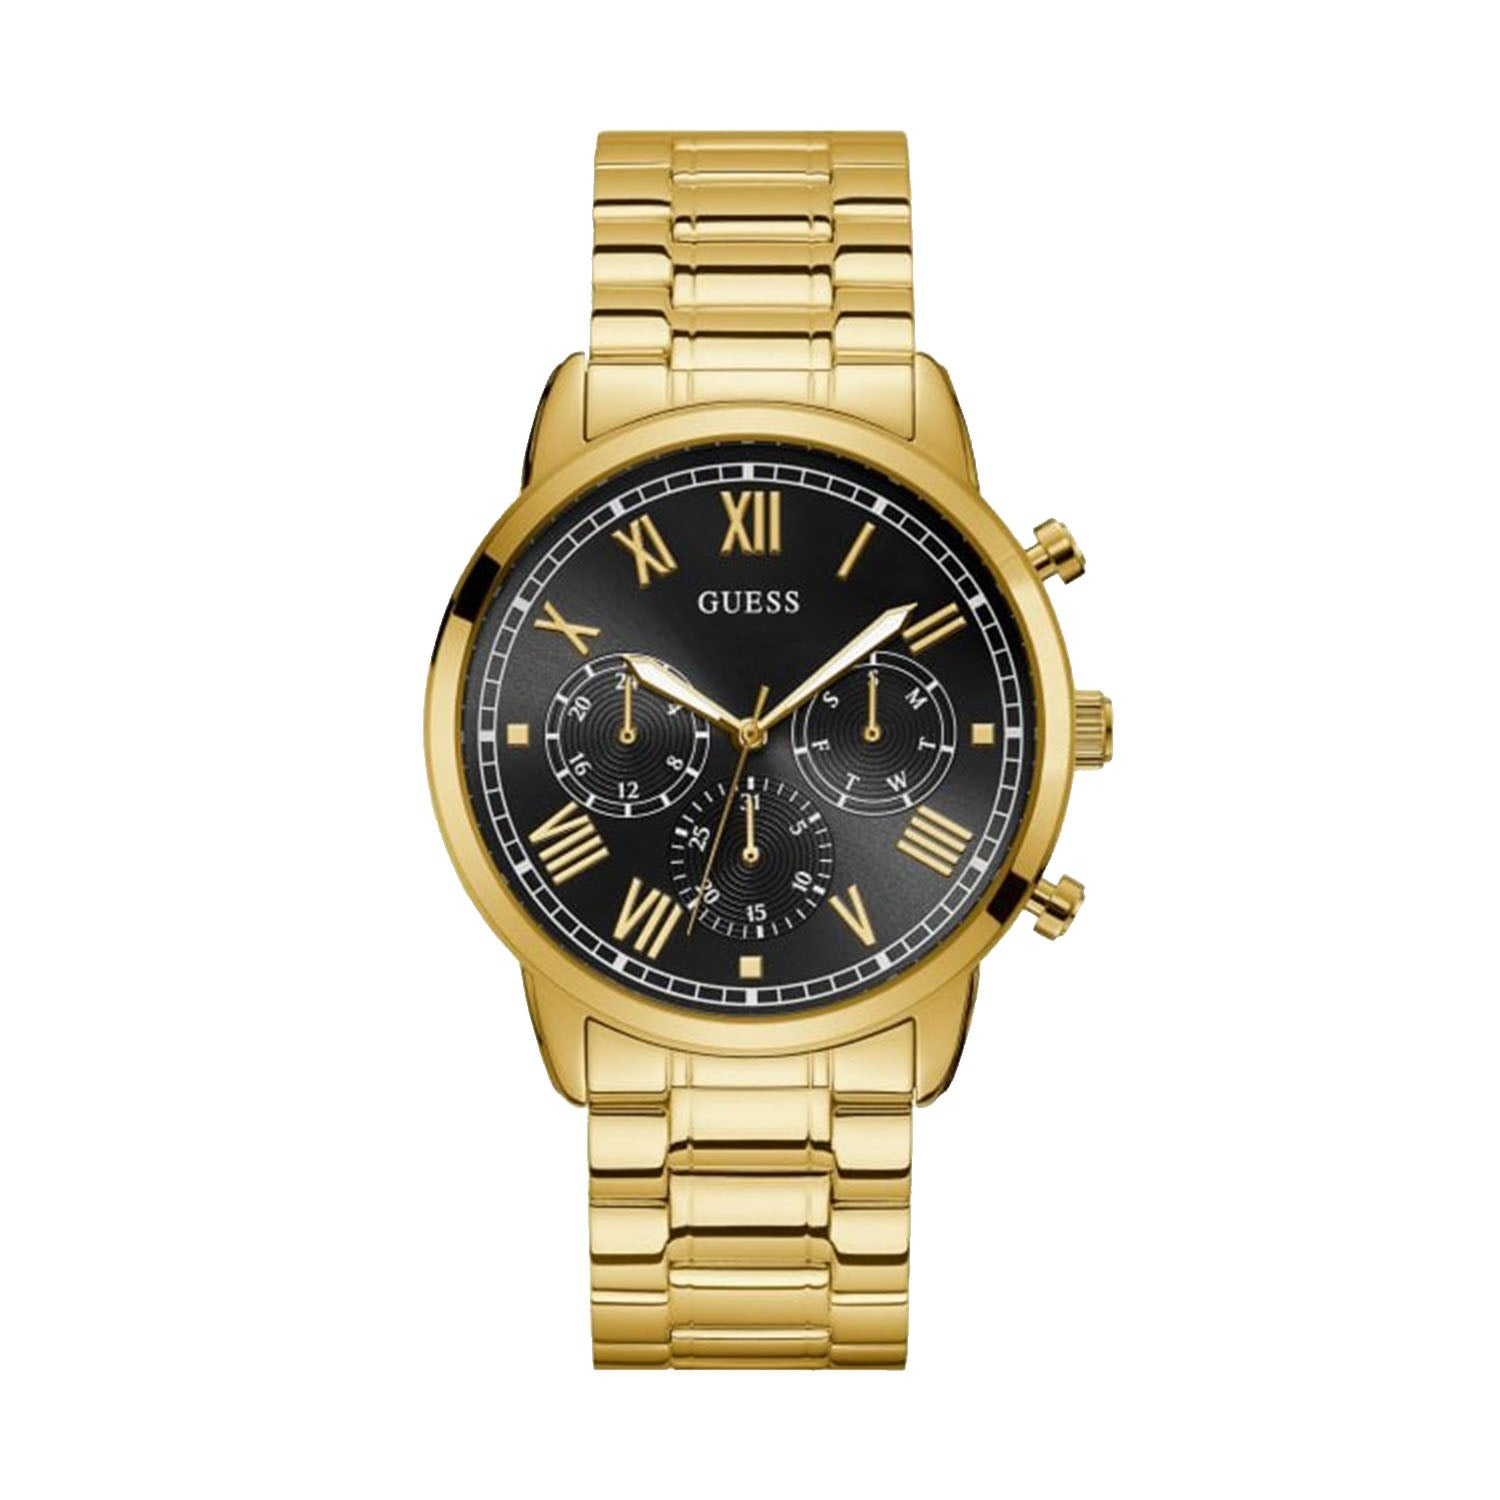 Guess Stainless Steel Sunray Multi-function Watch